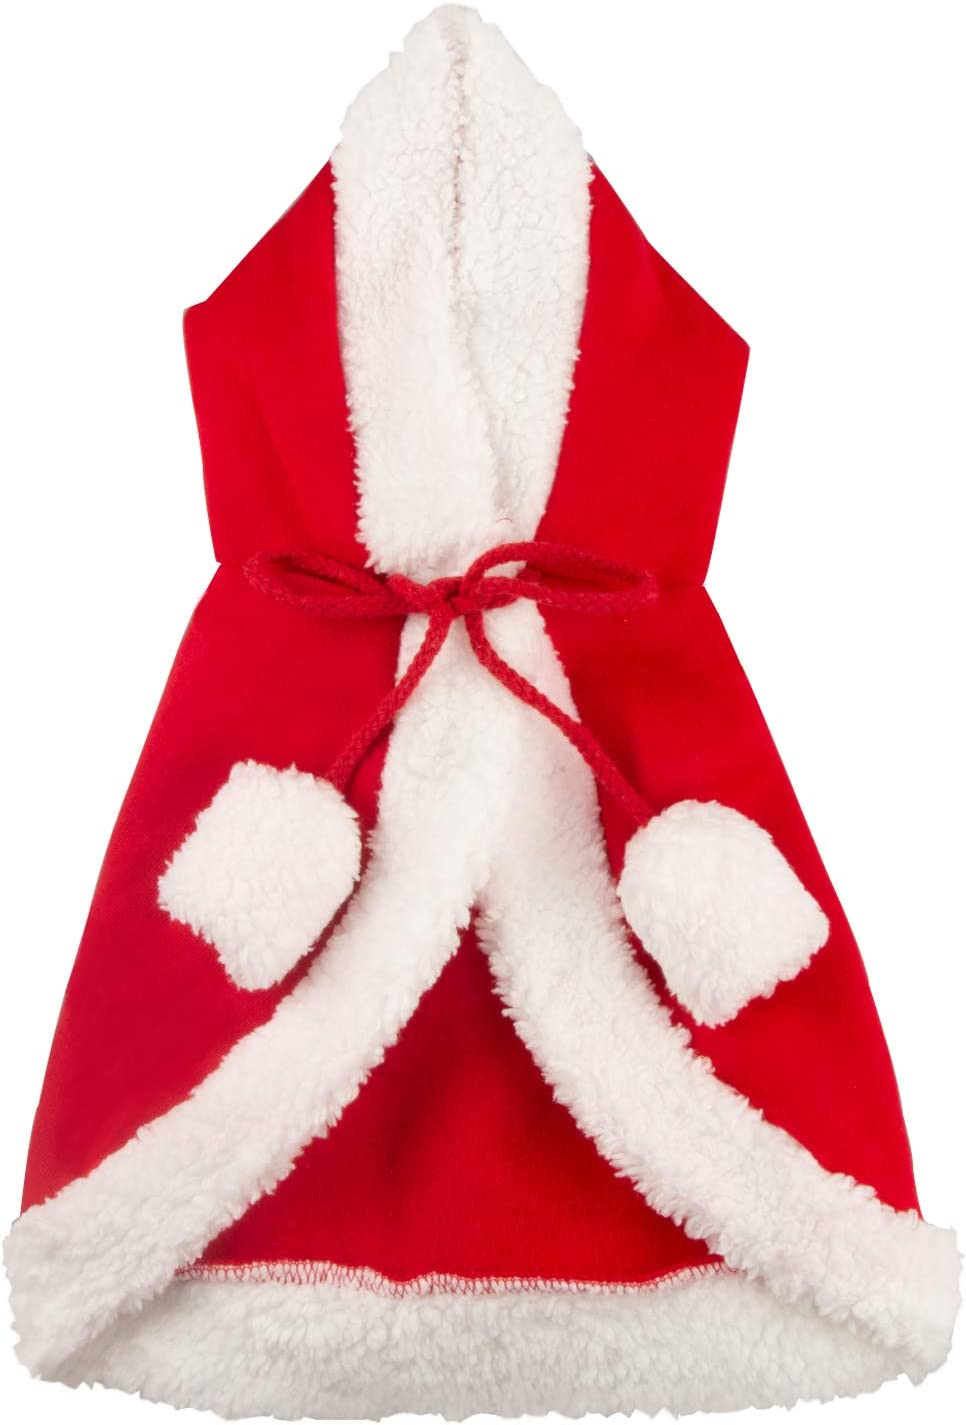 LERTREE Christmas Pet Cloak with Hat Red Santa Poncho Cape Xmas Party Costume for Puppy Dog and Cat S